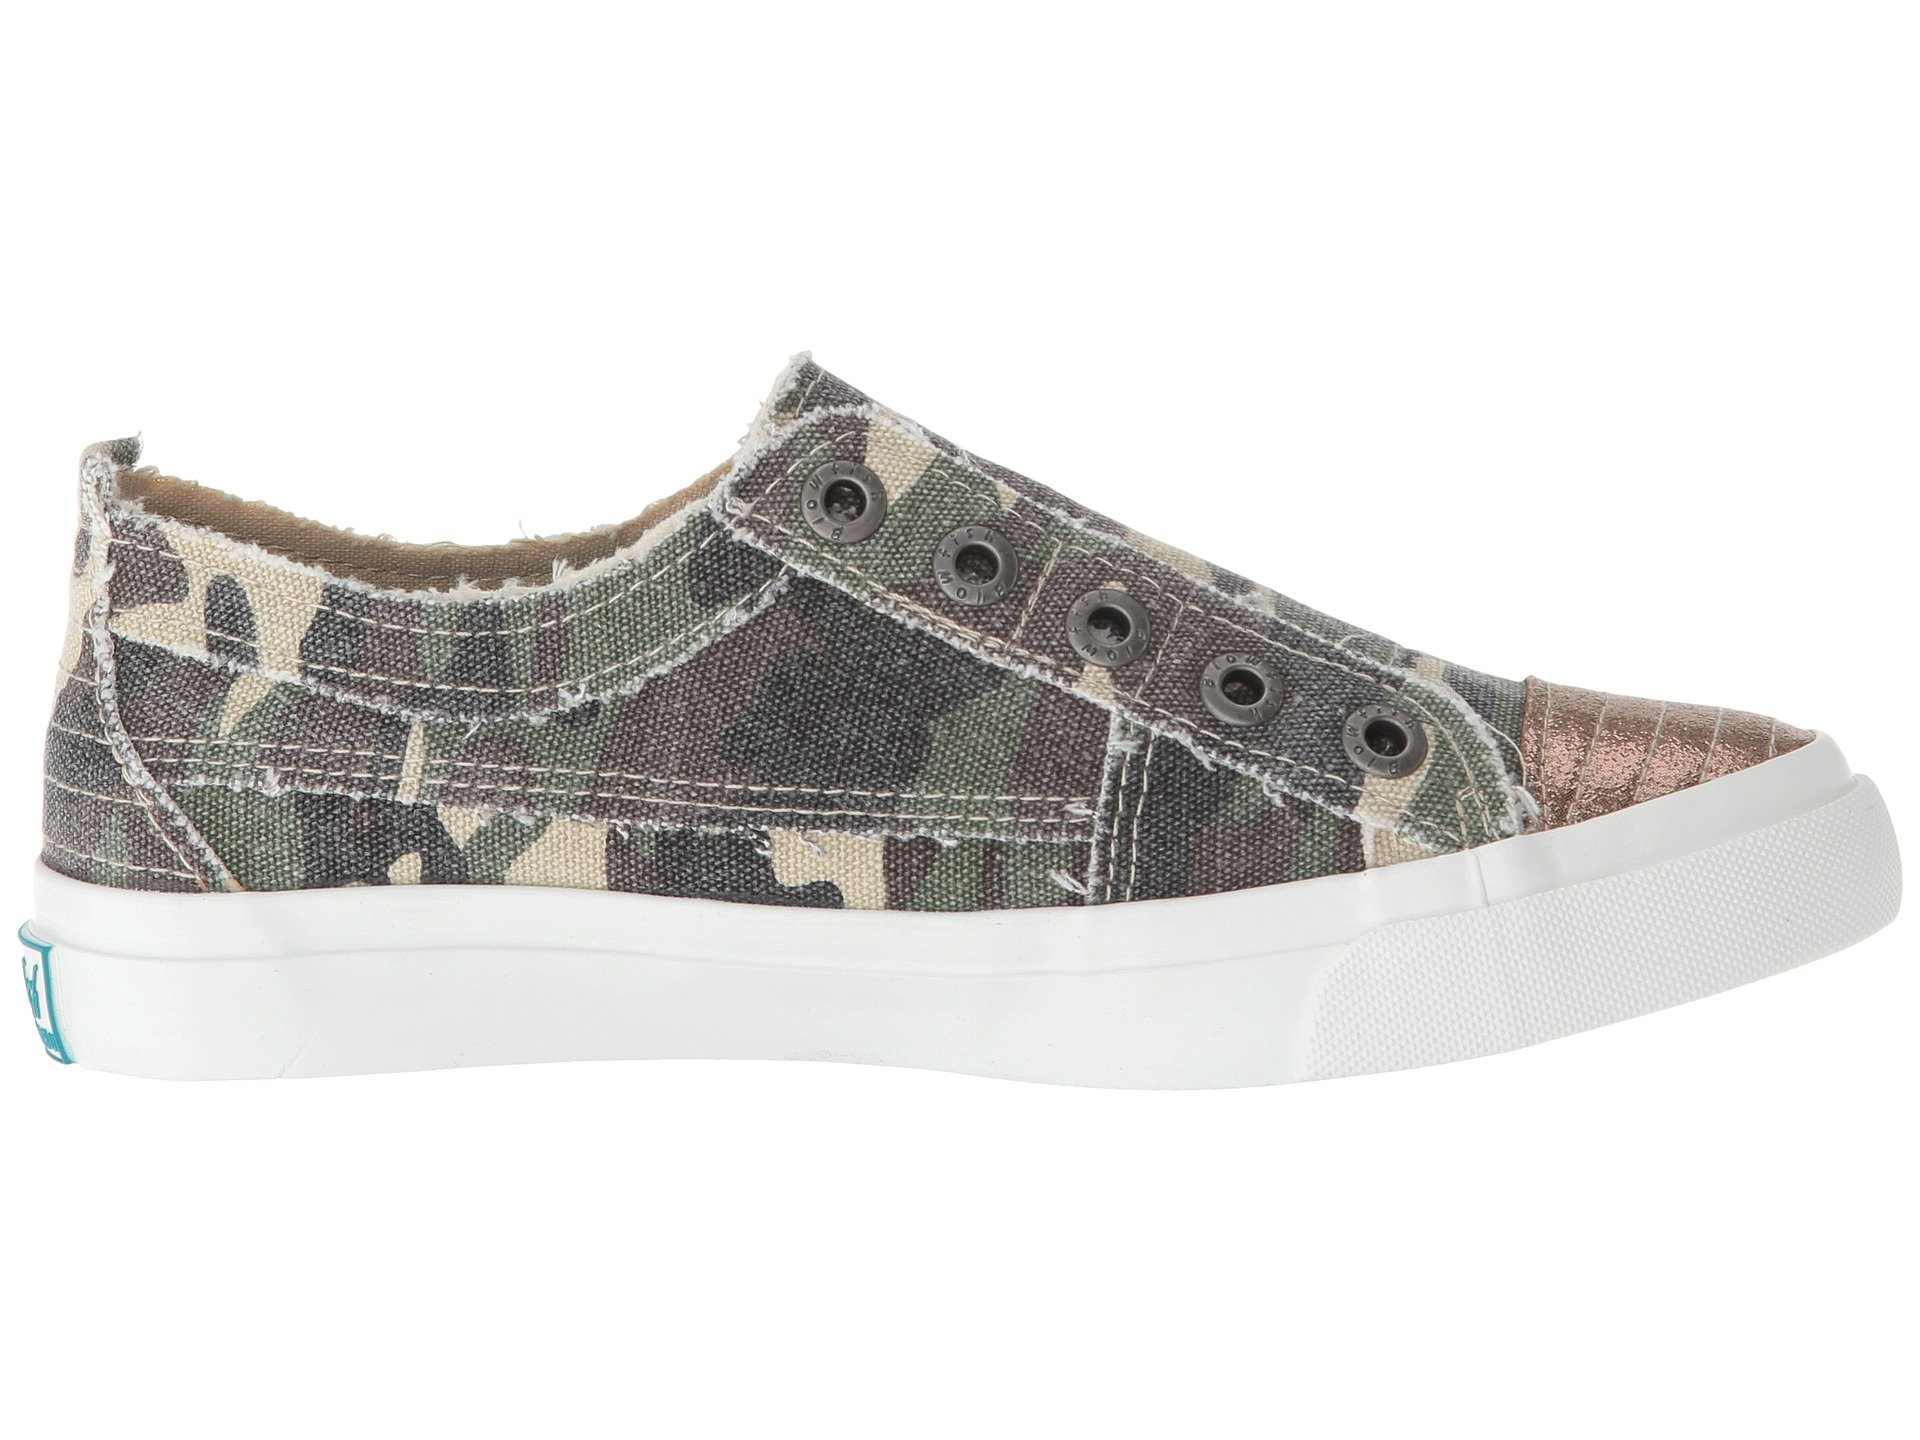 d45cca6068974 Play Play Blowfish Olive Olive Washed Washed Camo Blowfish Blowfish Camo  Play dRqUxd